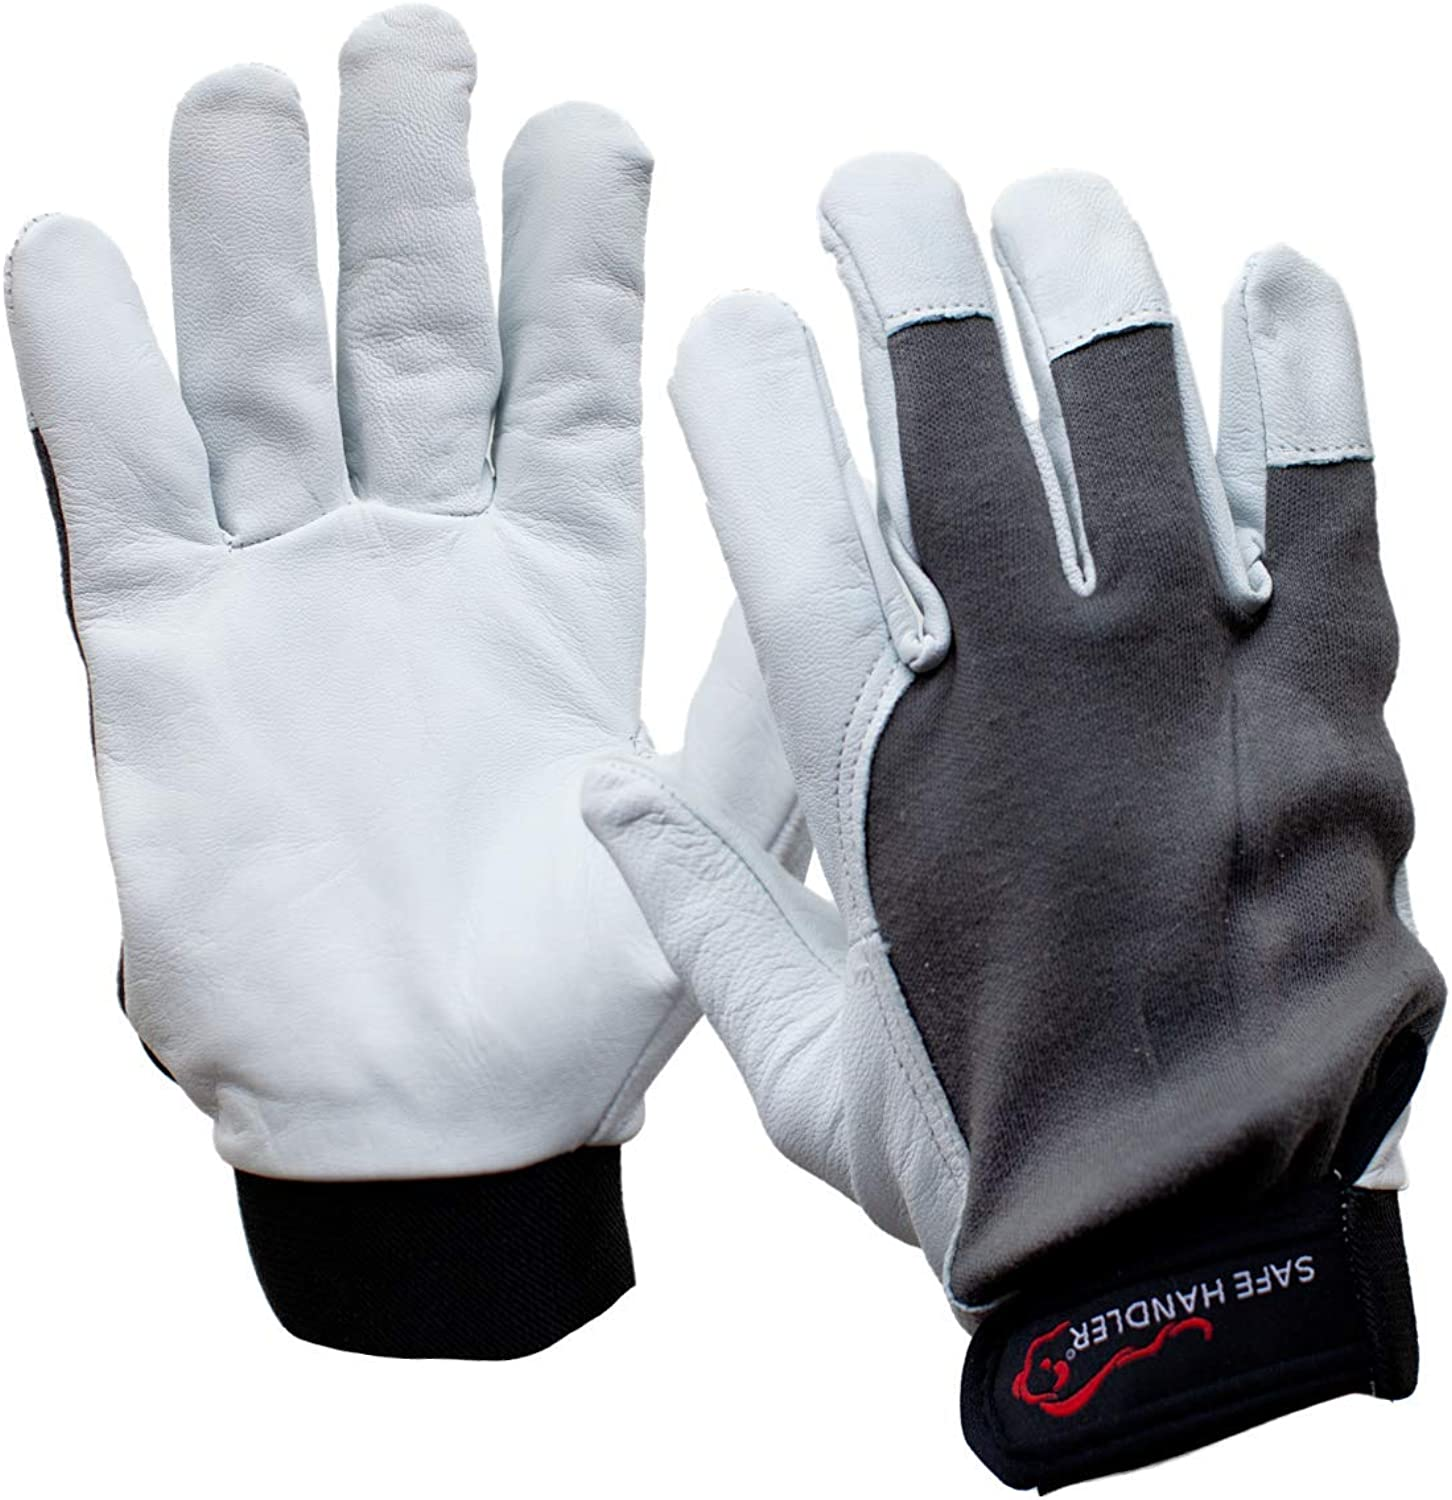 SAFE HANDLER Wing Thumb Gloves with Reinforced Finger Protection | Breathable, Stretch Fabric Backing, Finger Reinforced Assembly Glove, Secure Hook & Loop Closure, Goat Leather, S/M, 1 Pair